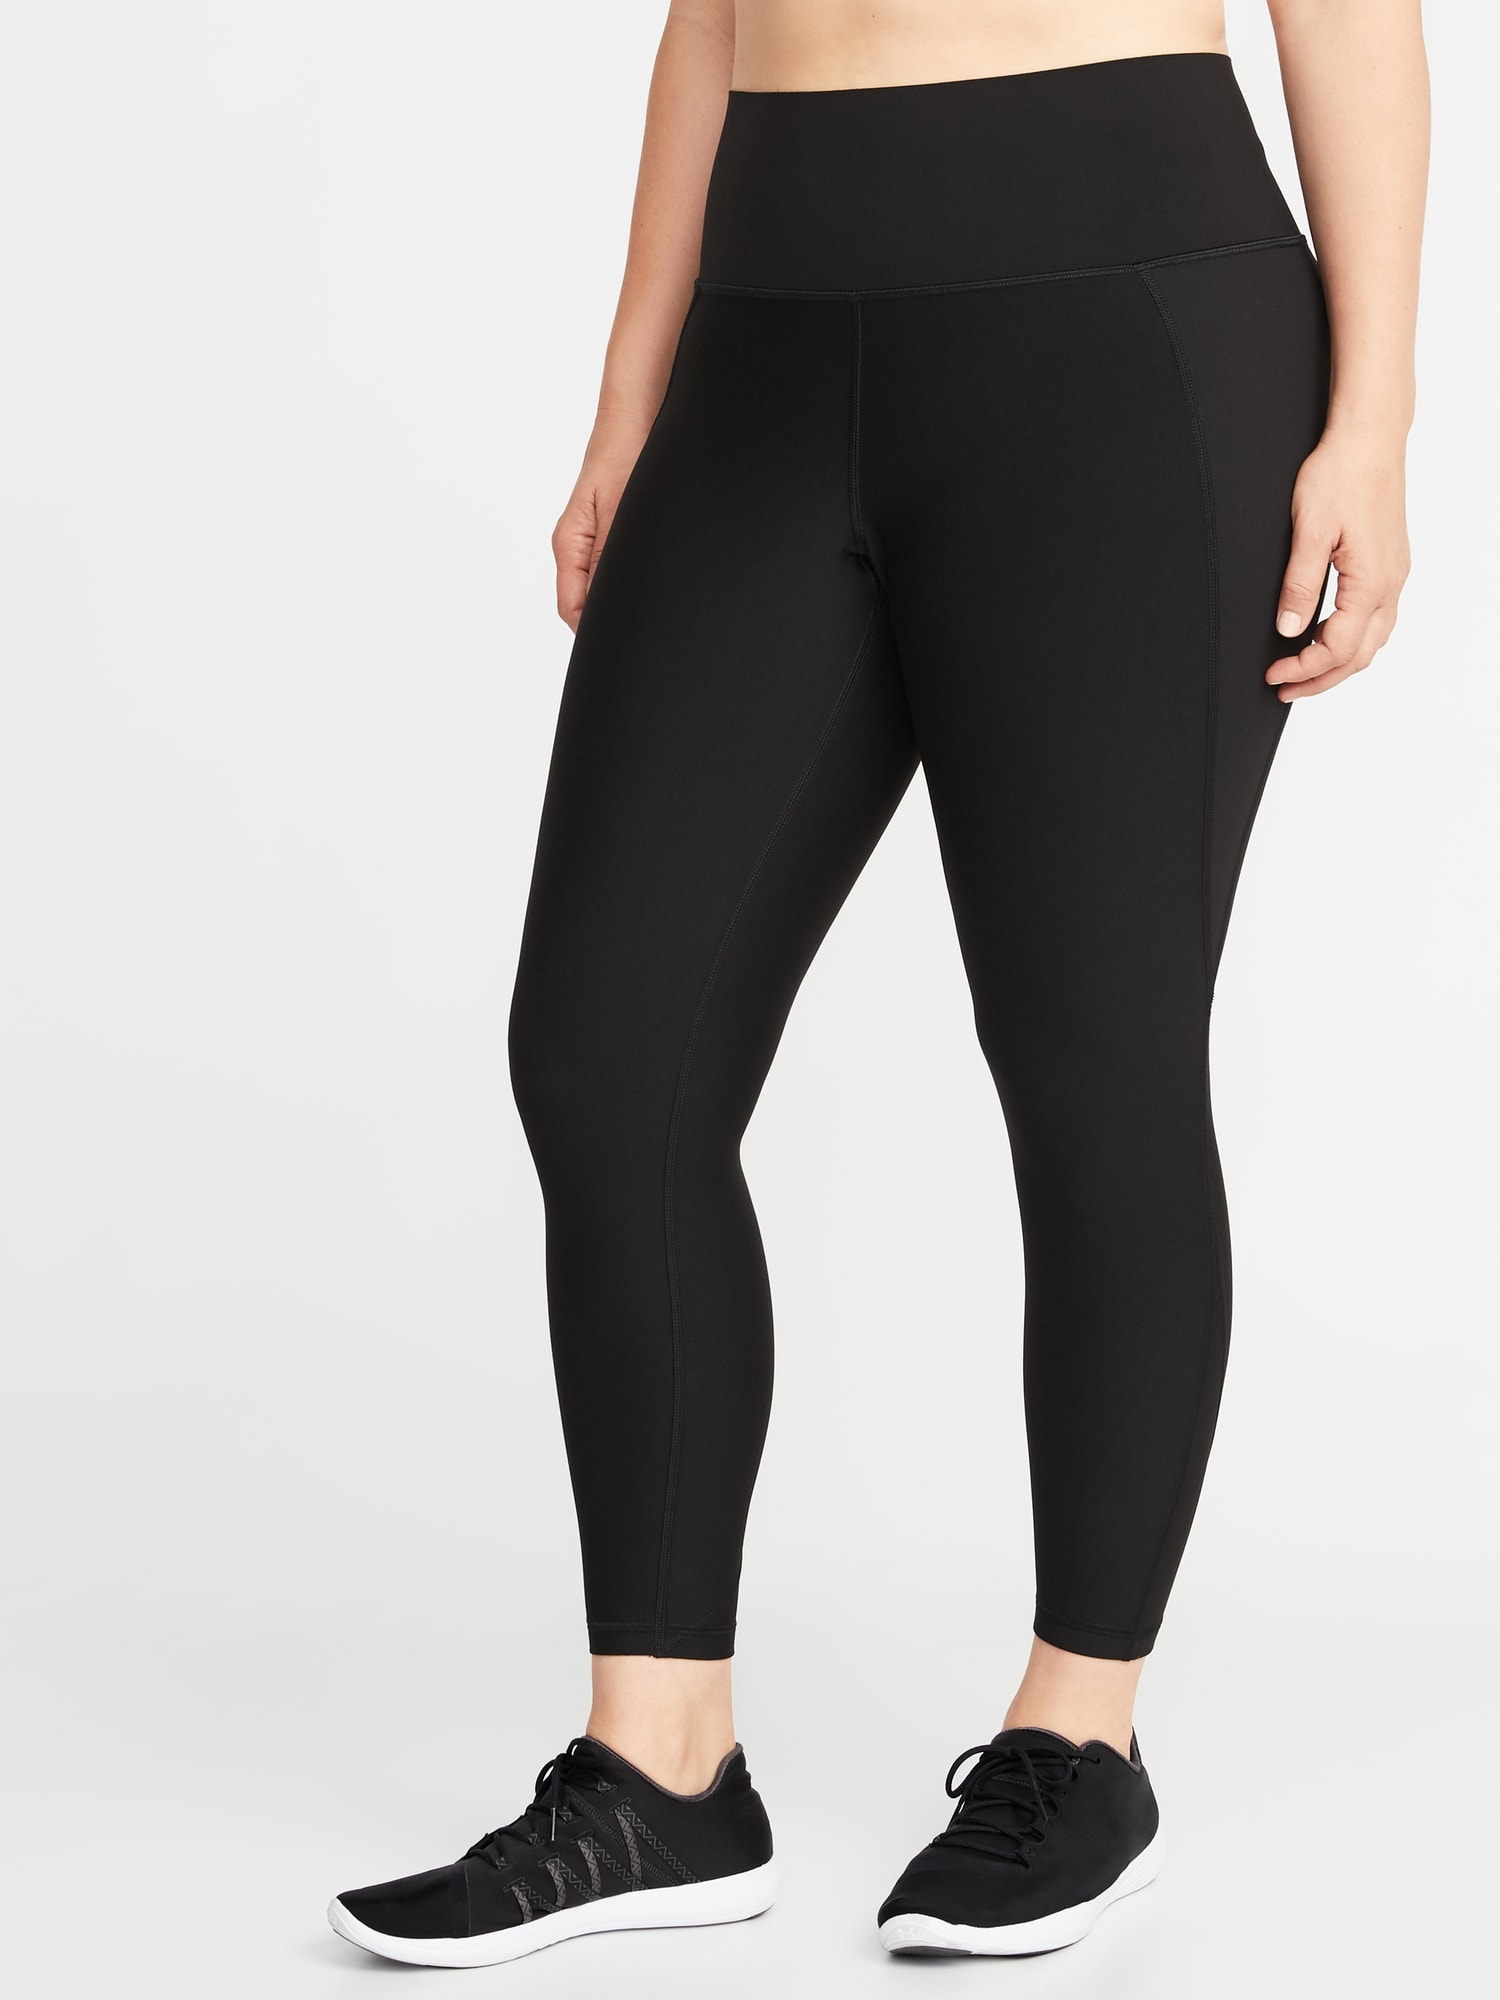 2f96410e5 High-Rise Elevate Built-In Sculpt Plus-Size 7 8-Length Leggings ...